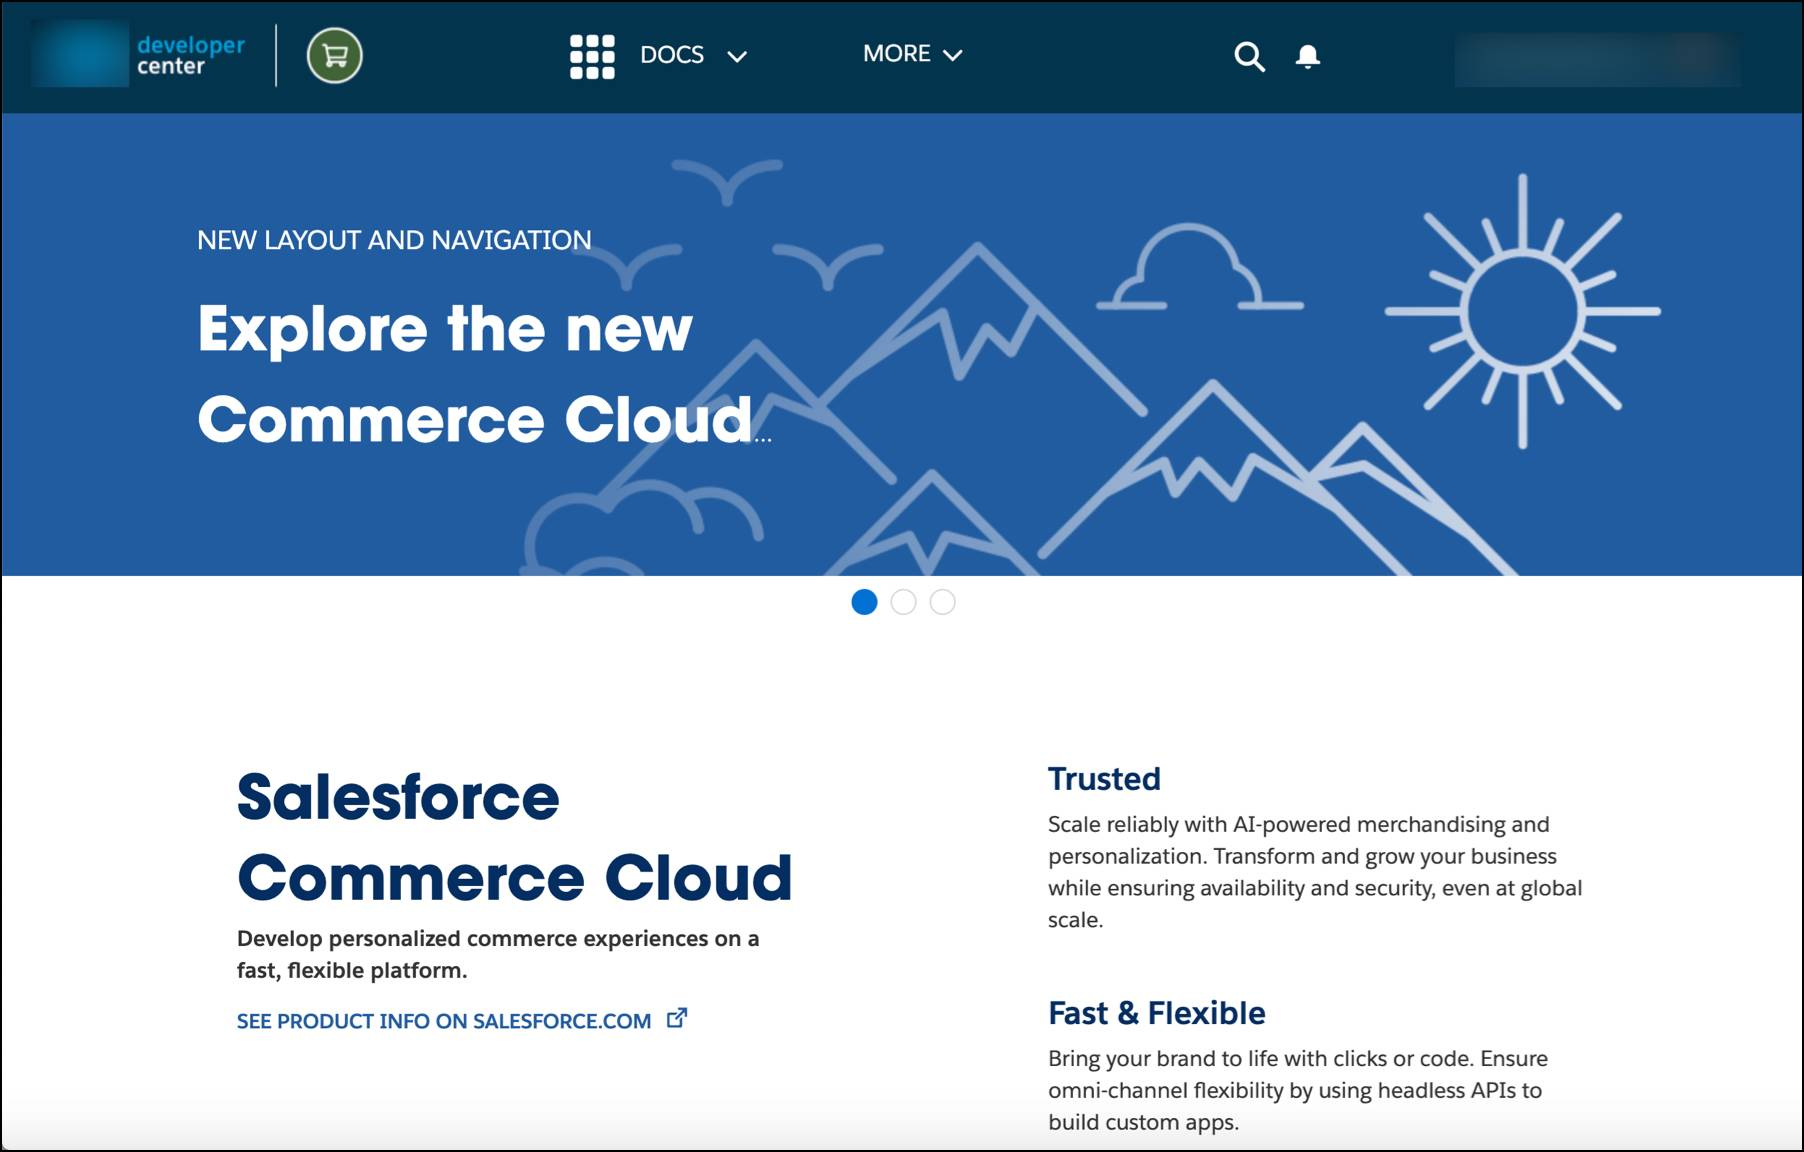 Access the Commerce Cloud Developer Center for B2C Commerce tools and collaboration.